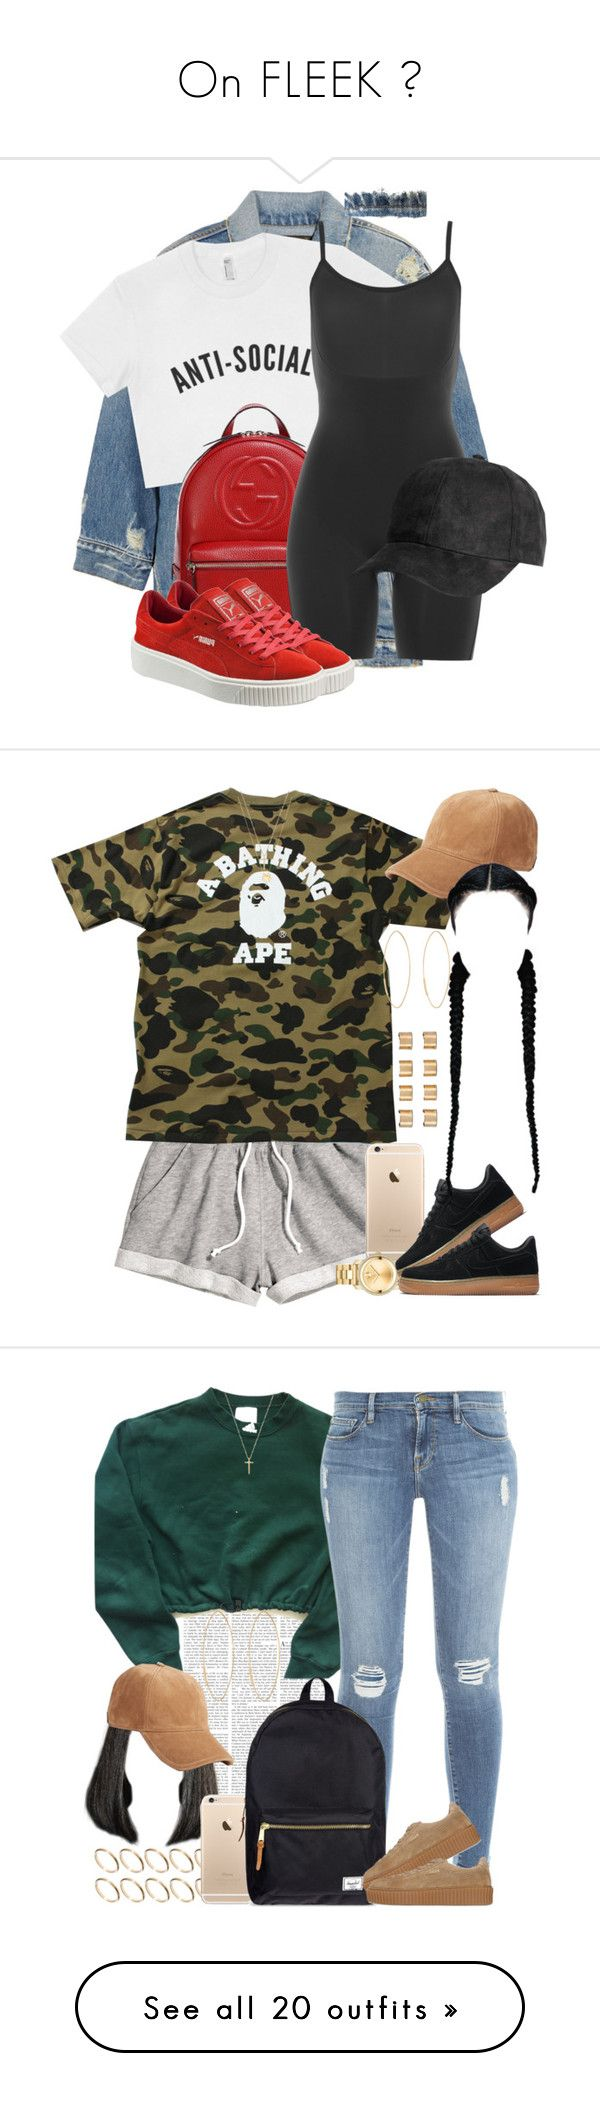 On FLEEK ✨ by poppinqueen ❤ liked on Polyvore featuring R13, Gucci, SPANX, Puma, HM, A BATHING APE, Movado, NIKE, rag bone and Joolz by Martha Calvo